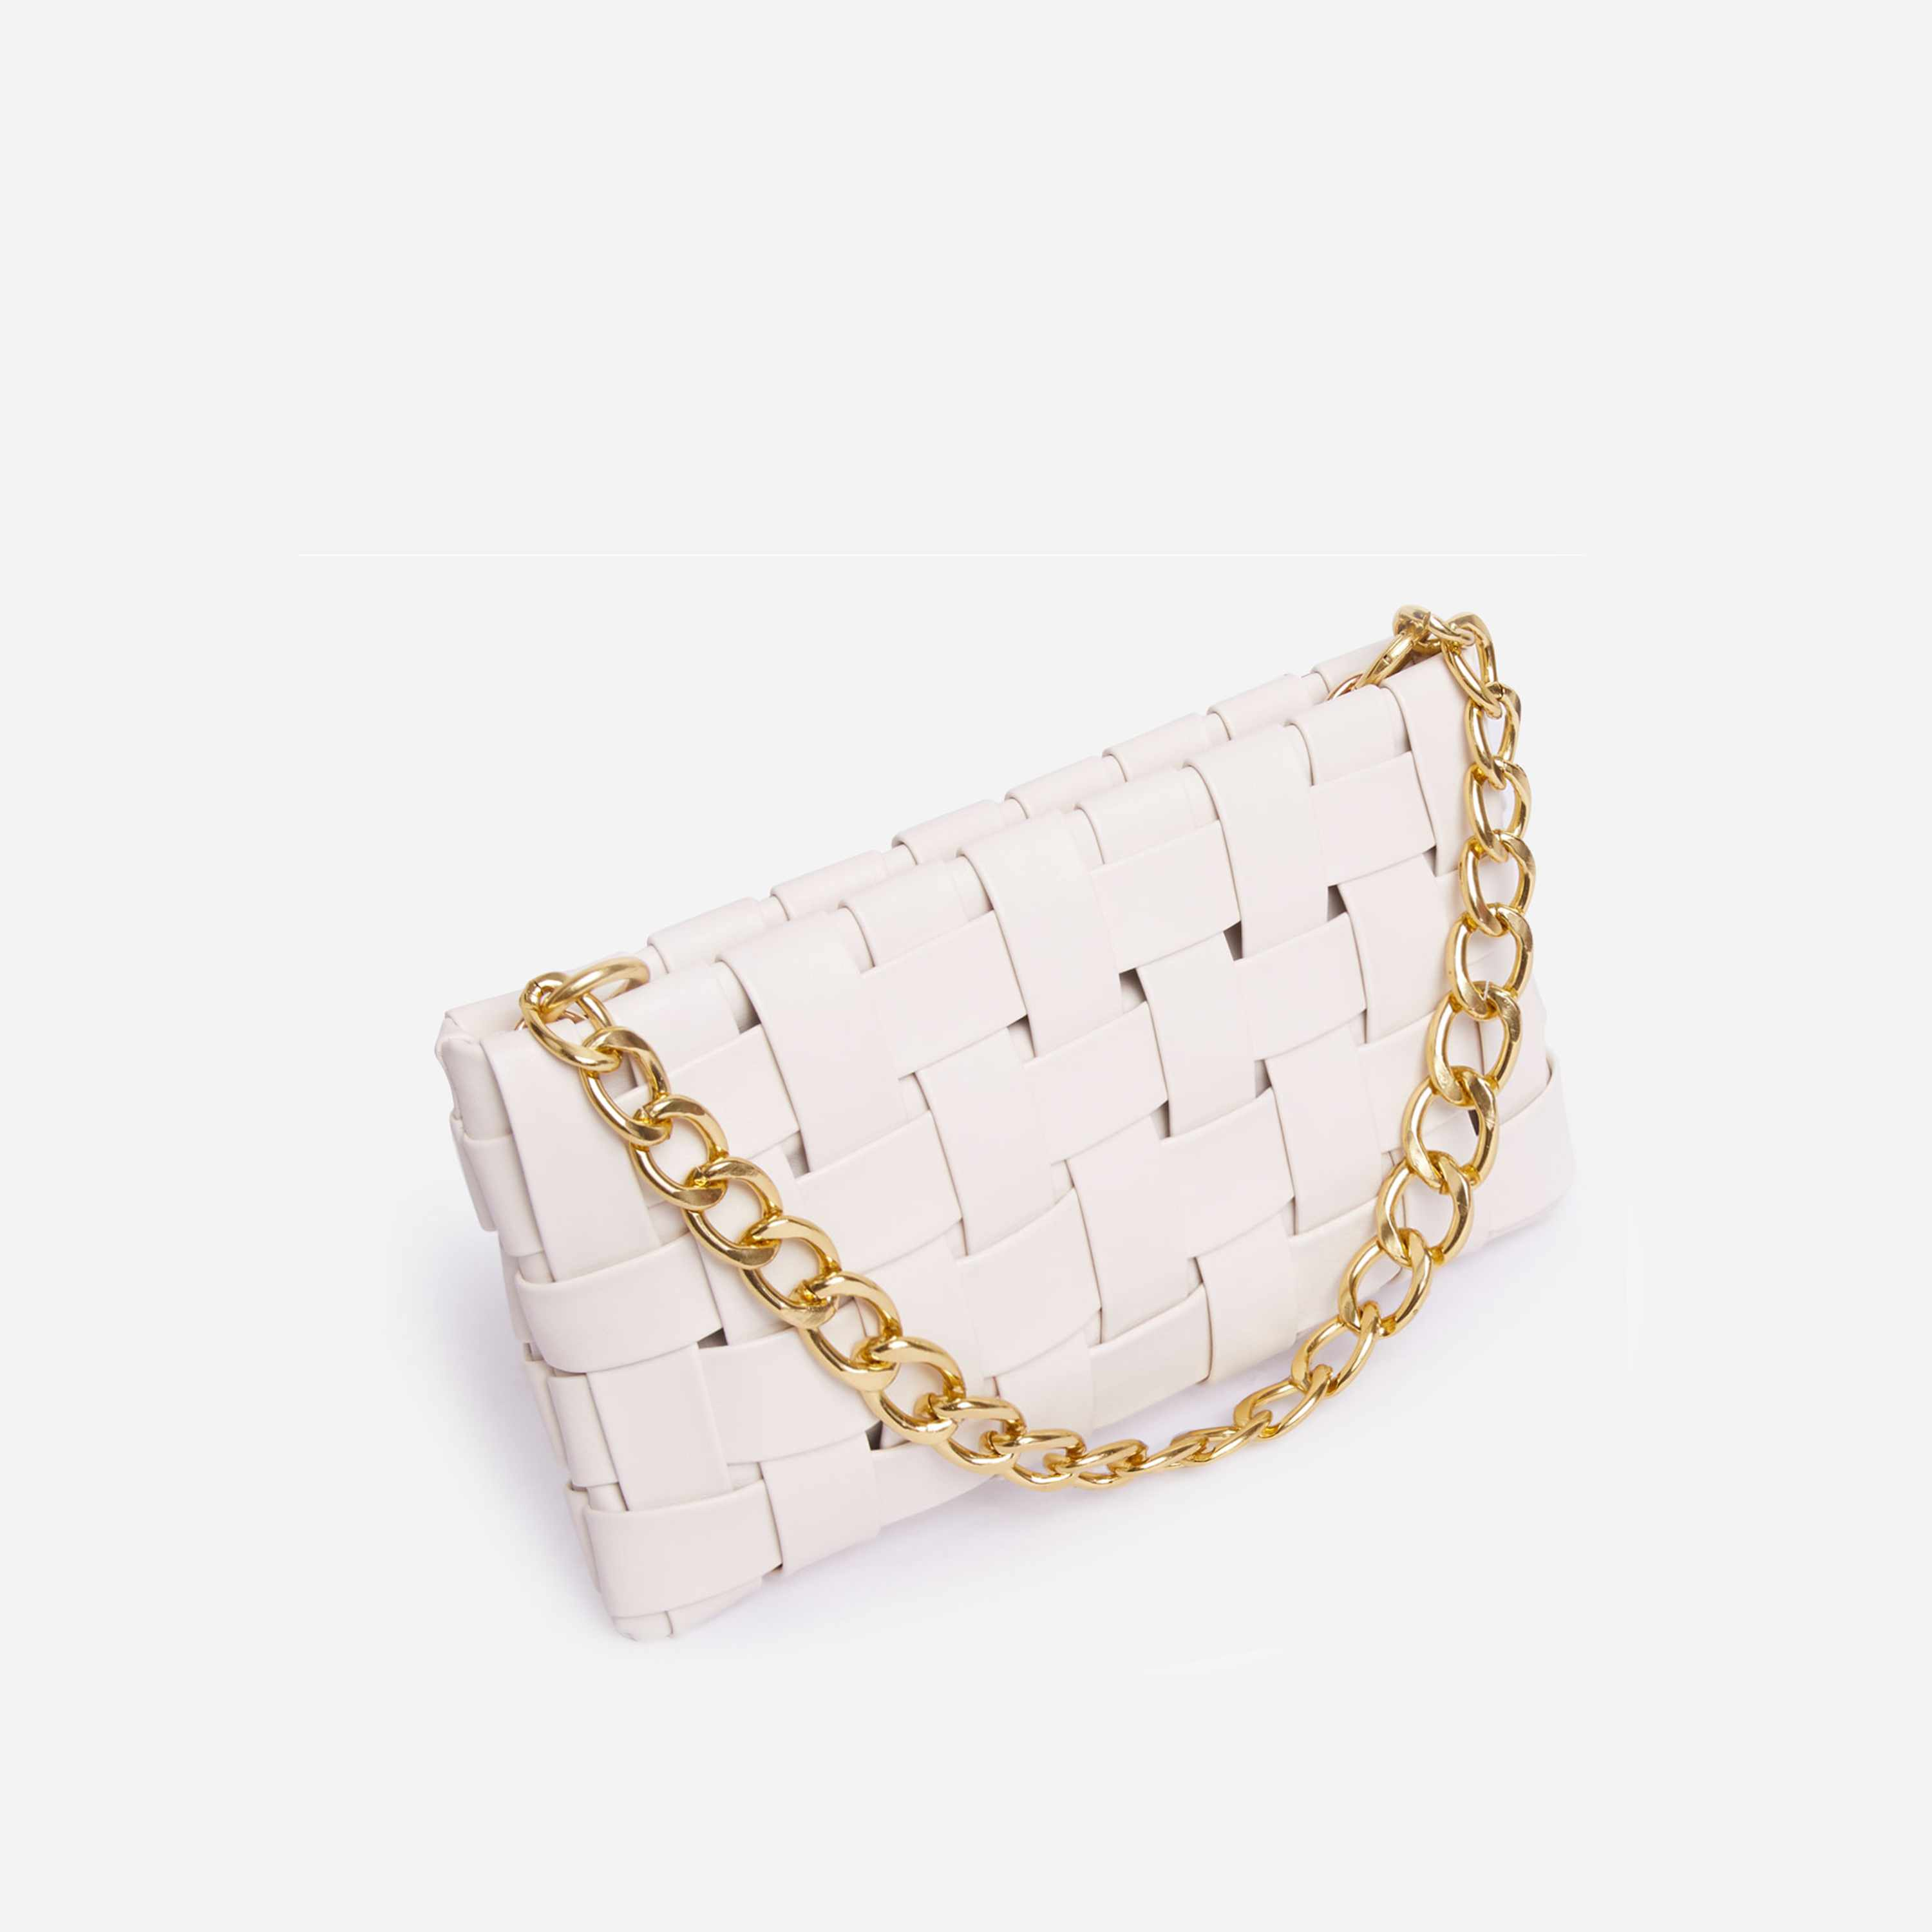 Blogger Woven Shoulder Bag In White Faux Leather